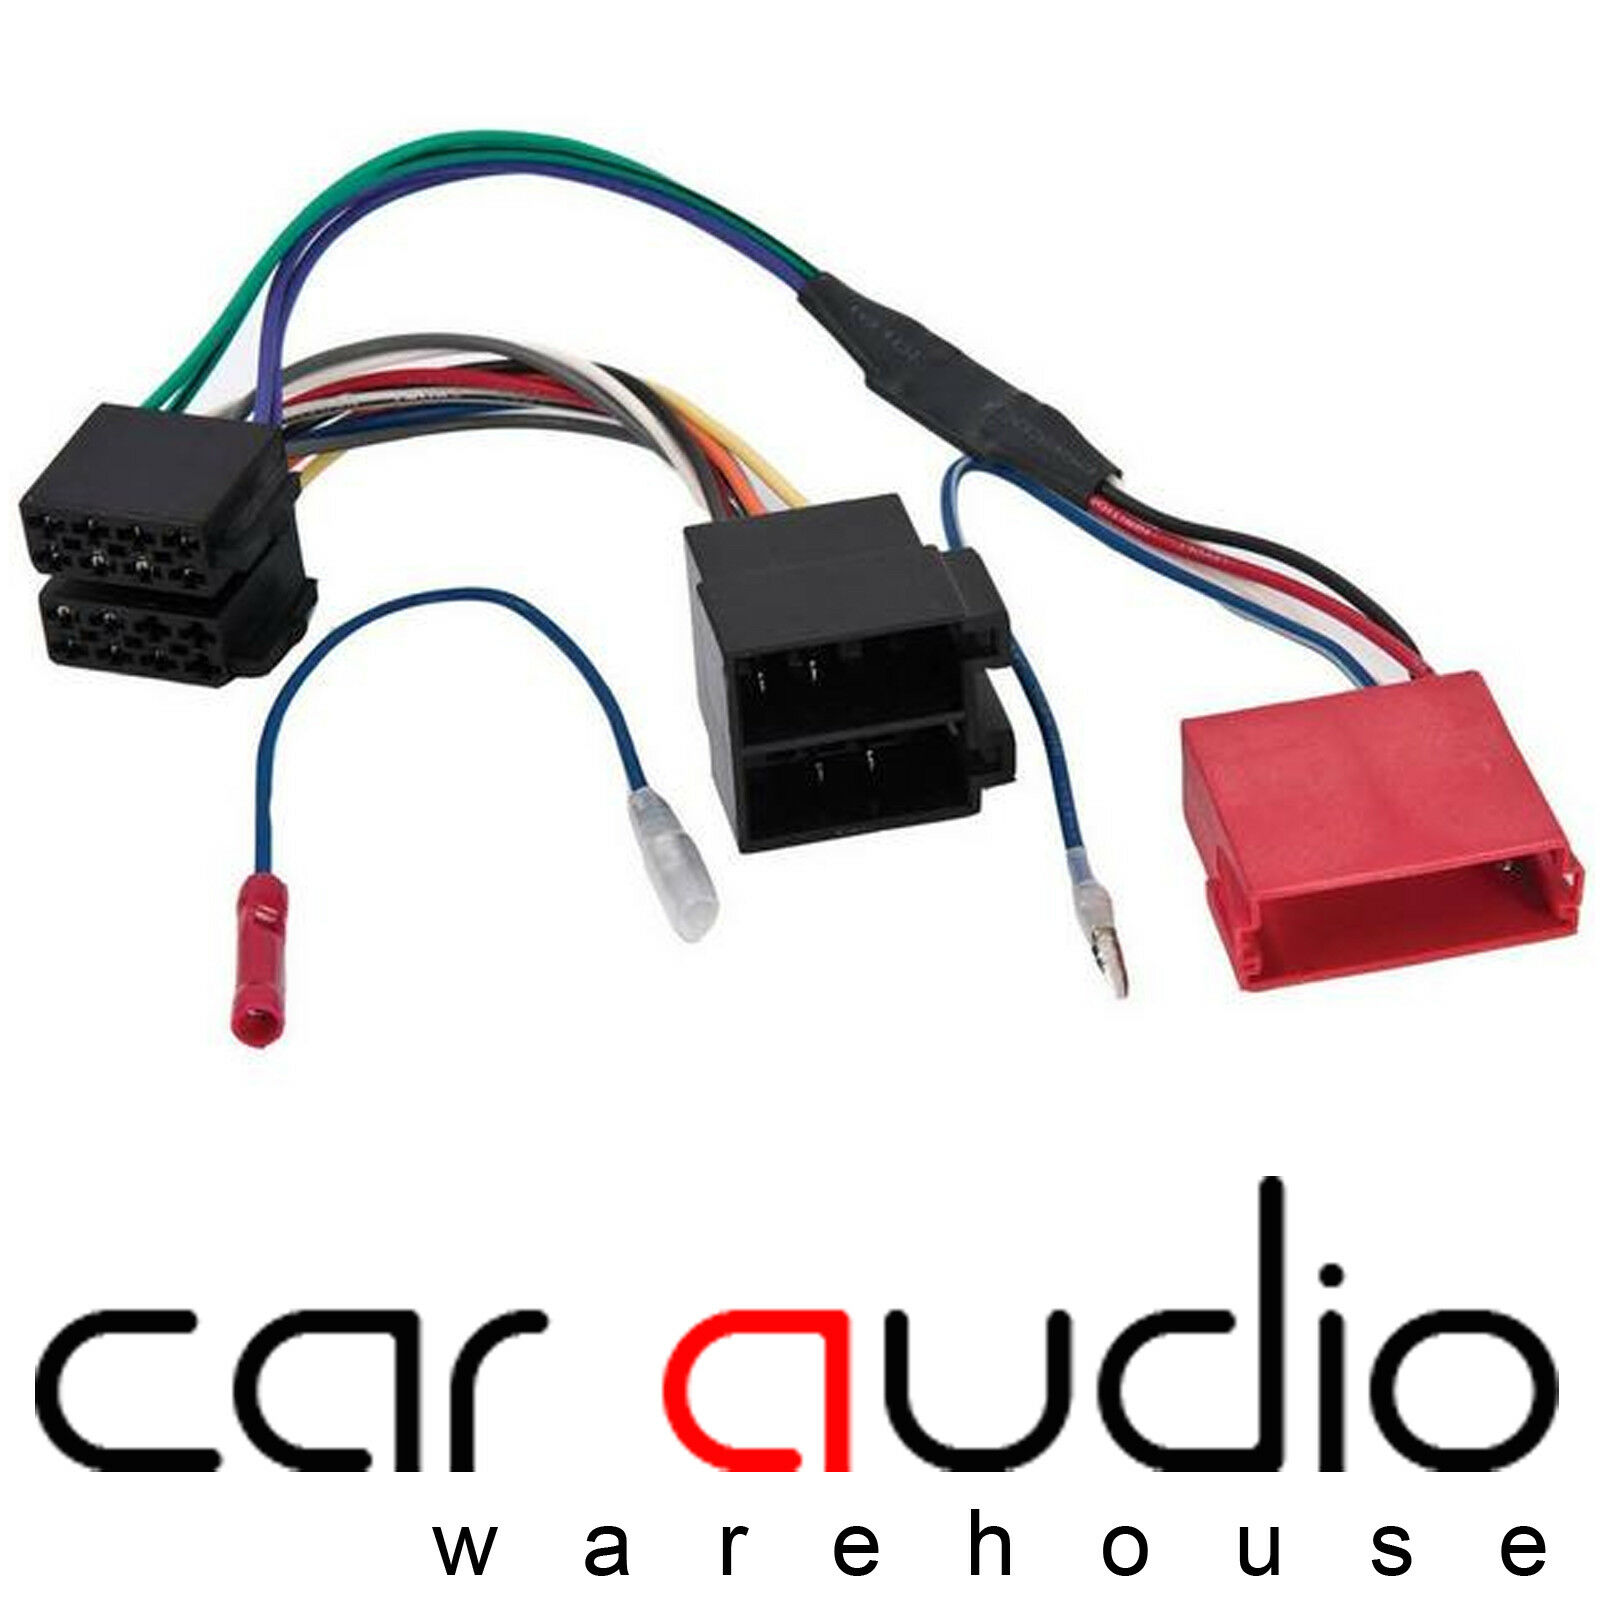 Audi A3 A4 A6 Tt Rear Speaker Amplified Bypass Car Stereo Wiring Harness Cable 1 Of 1free Shipping See More